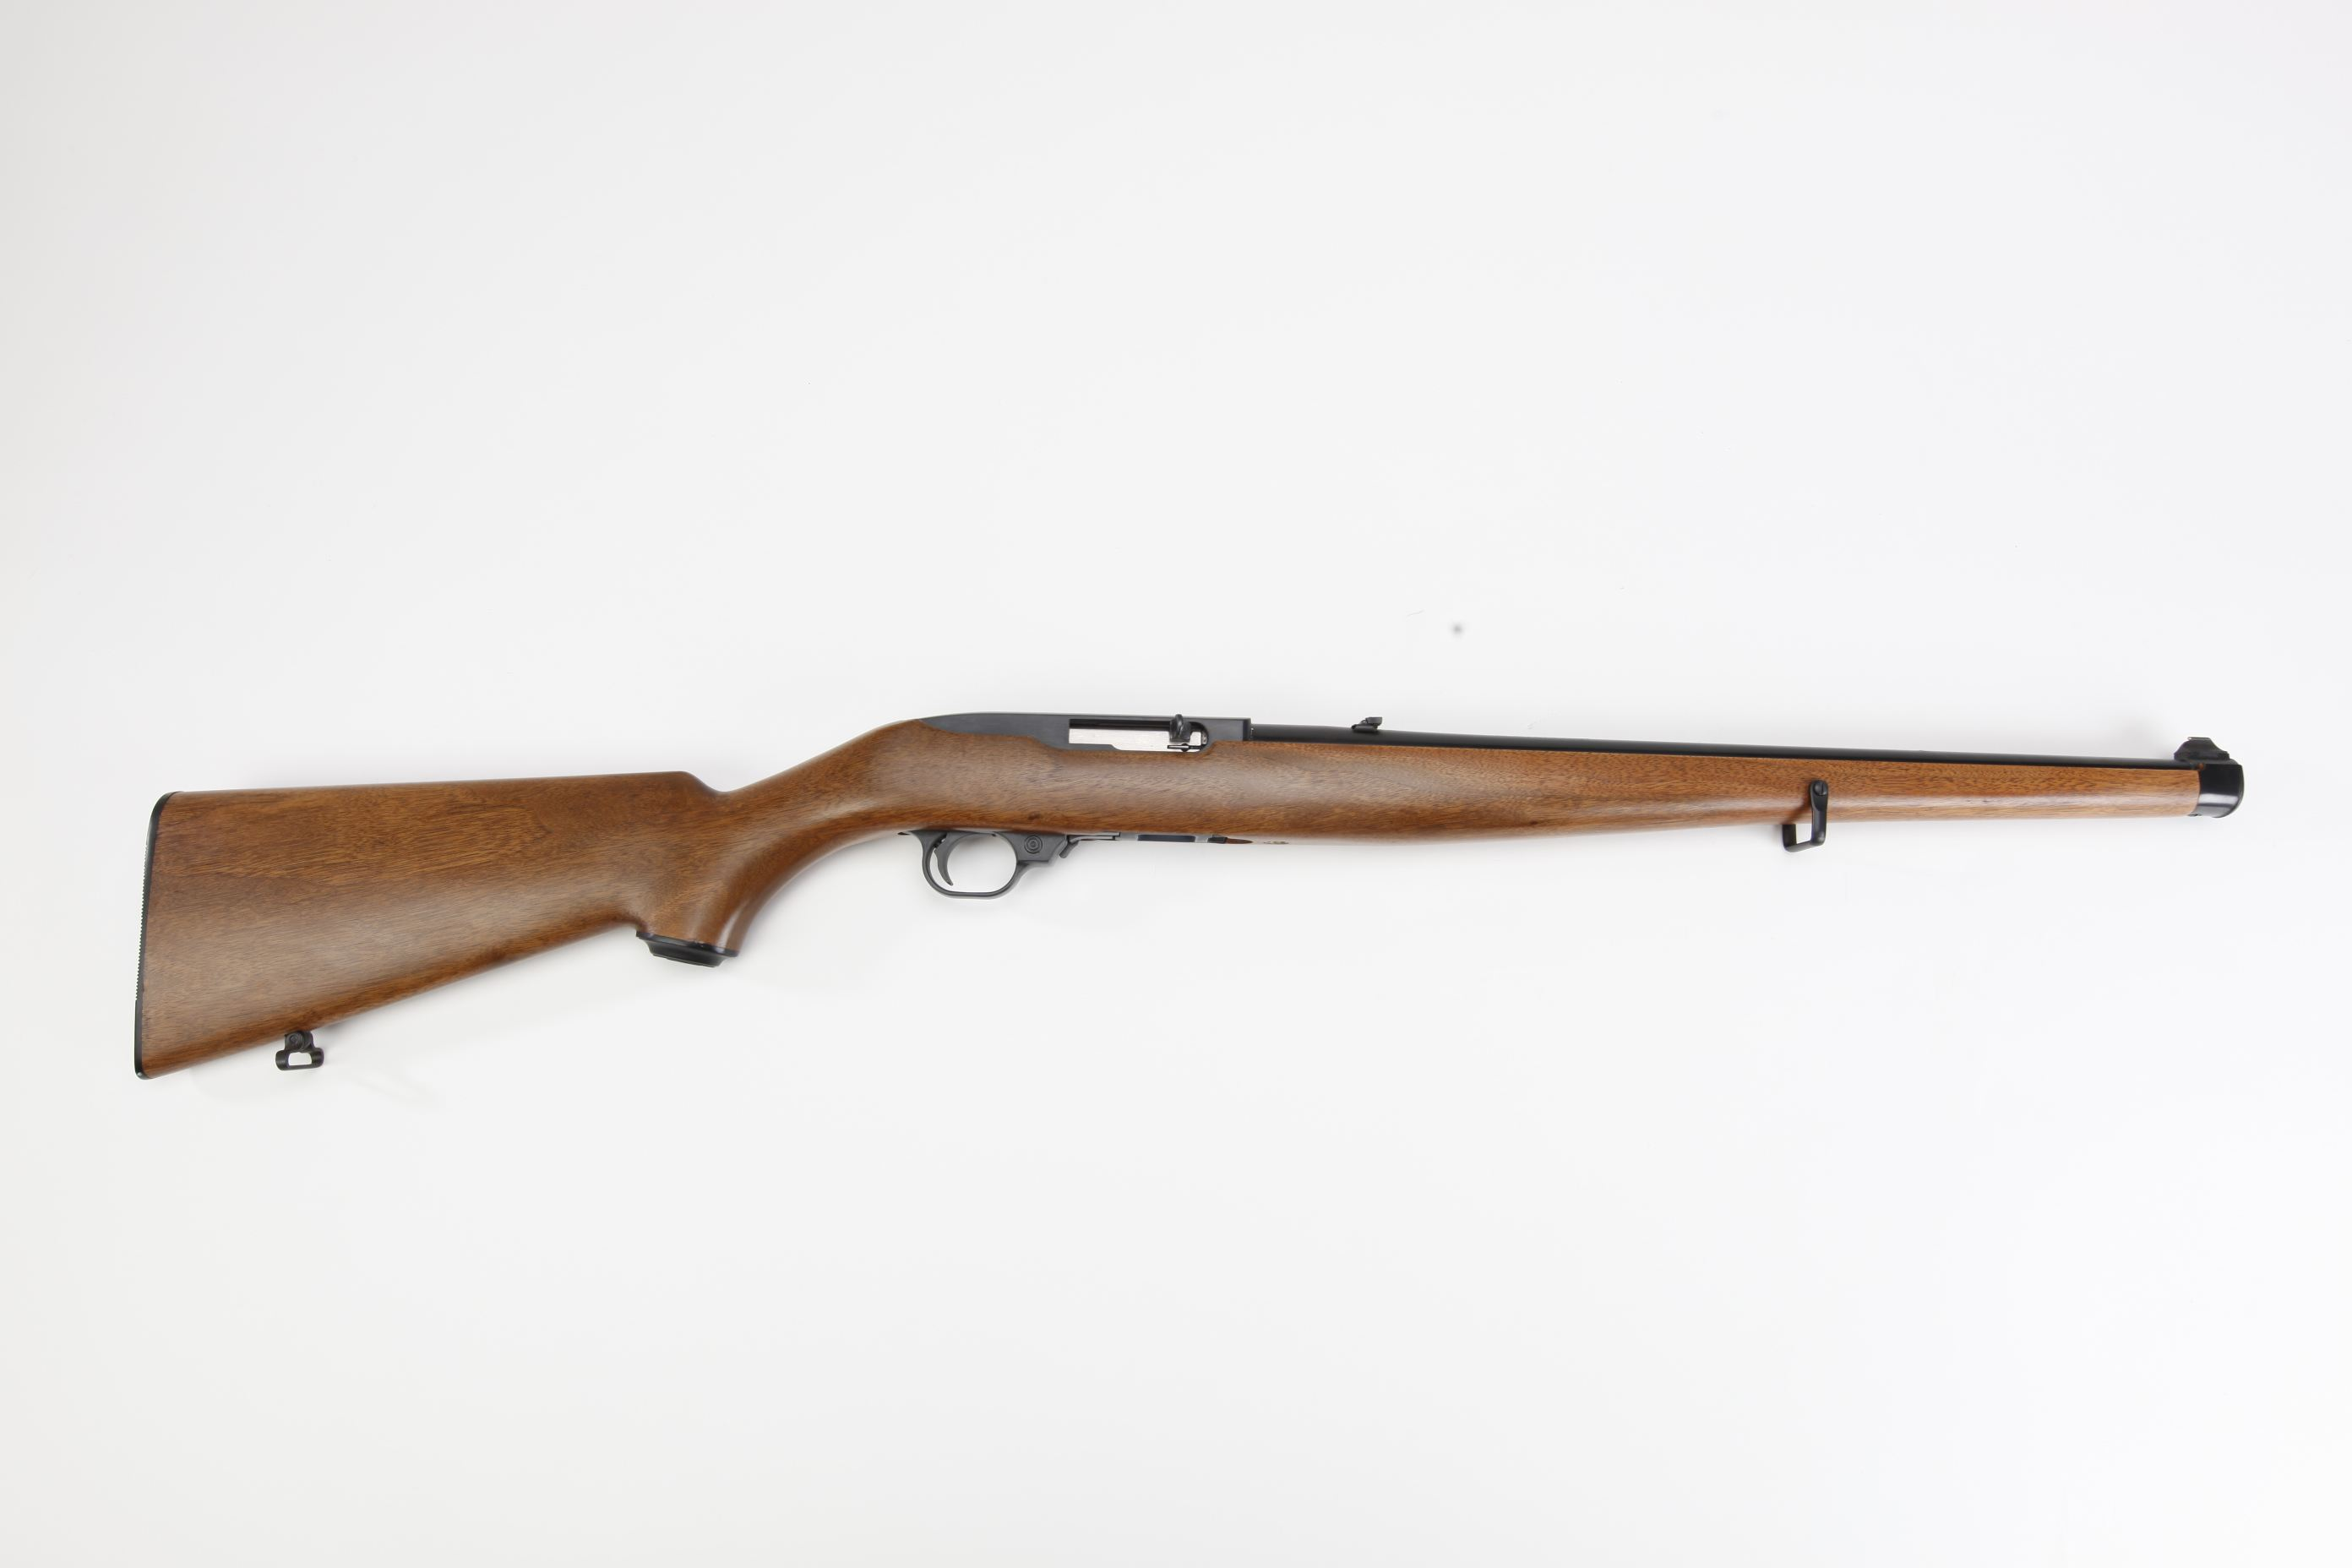 Ruger and Co Model 10 22 International Semi Automatic Rifle